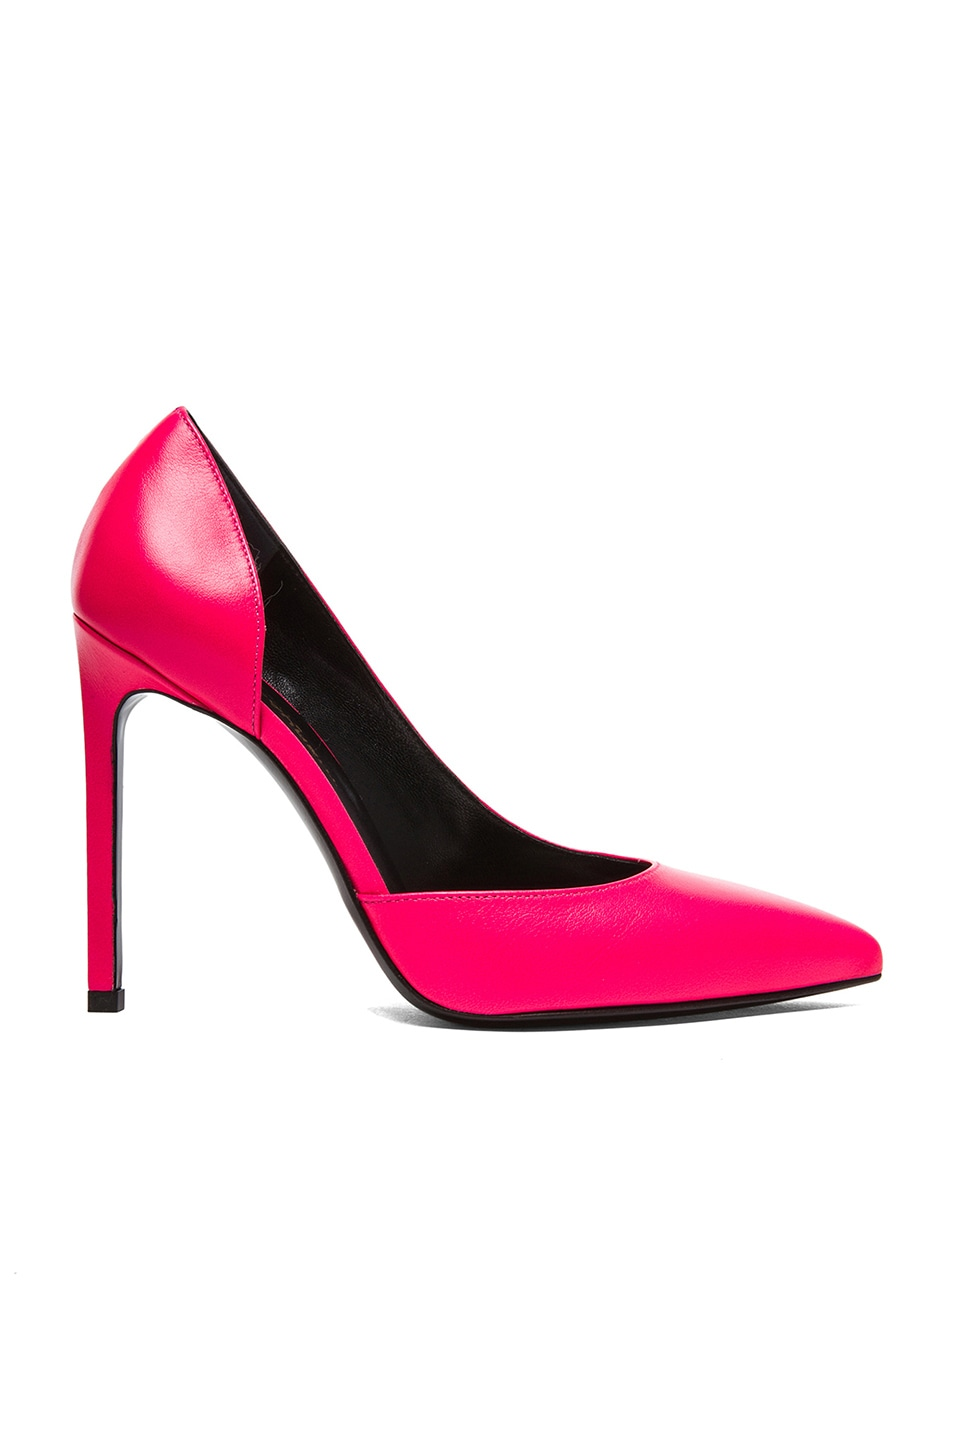 Image 1 of Saint Laurent Paris D'Orsay Calfskin Leather Heels in Neon Pink